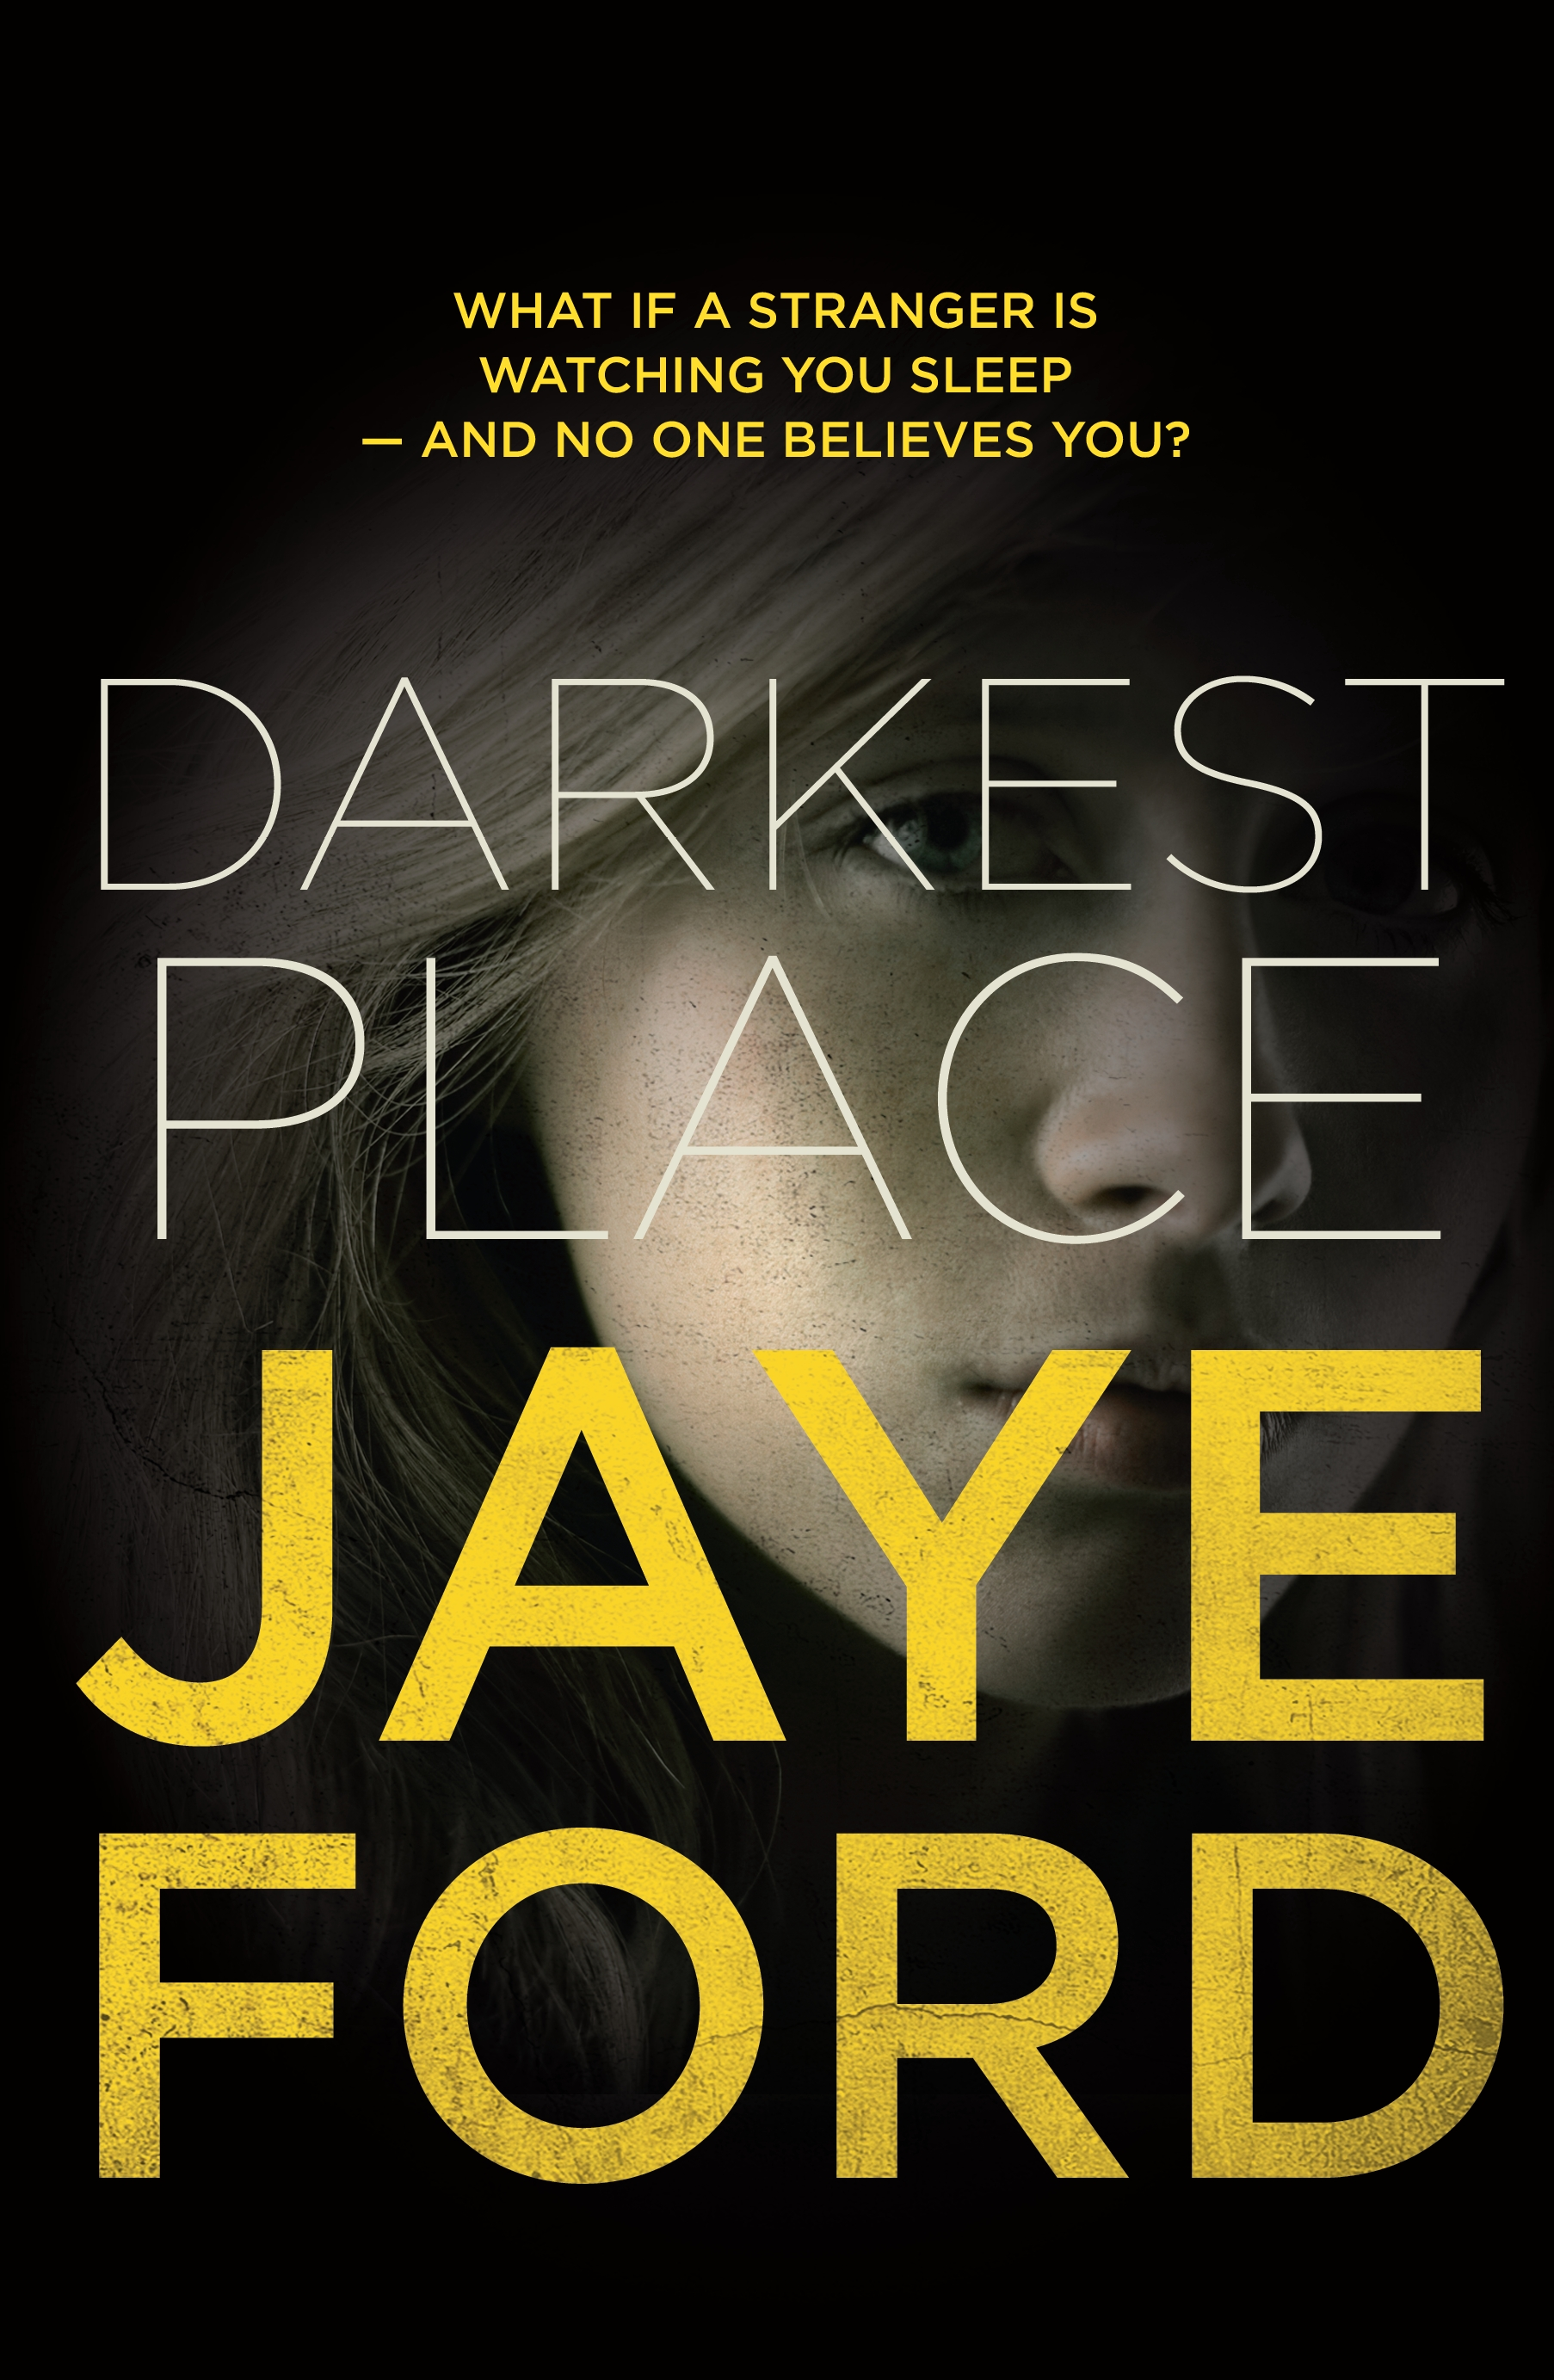 Darkest Place by Jaye Ford, ISBN: 9780857985941